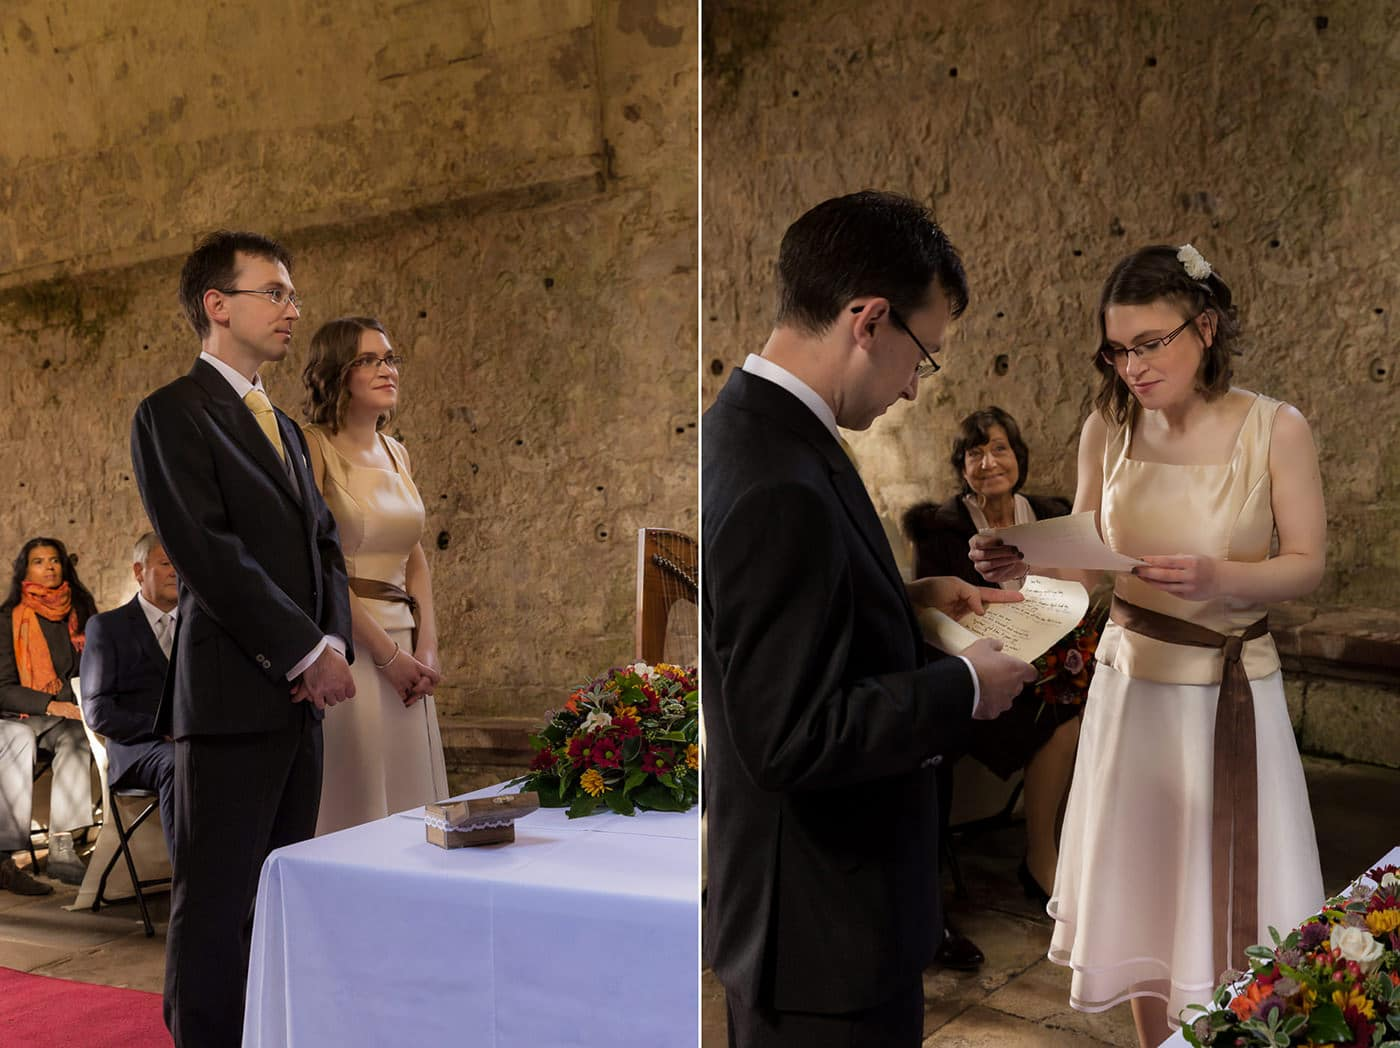 The bride's vows during the ceremony